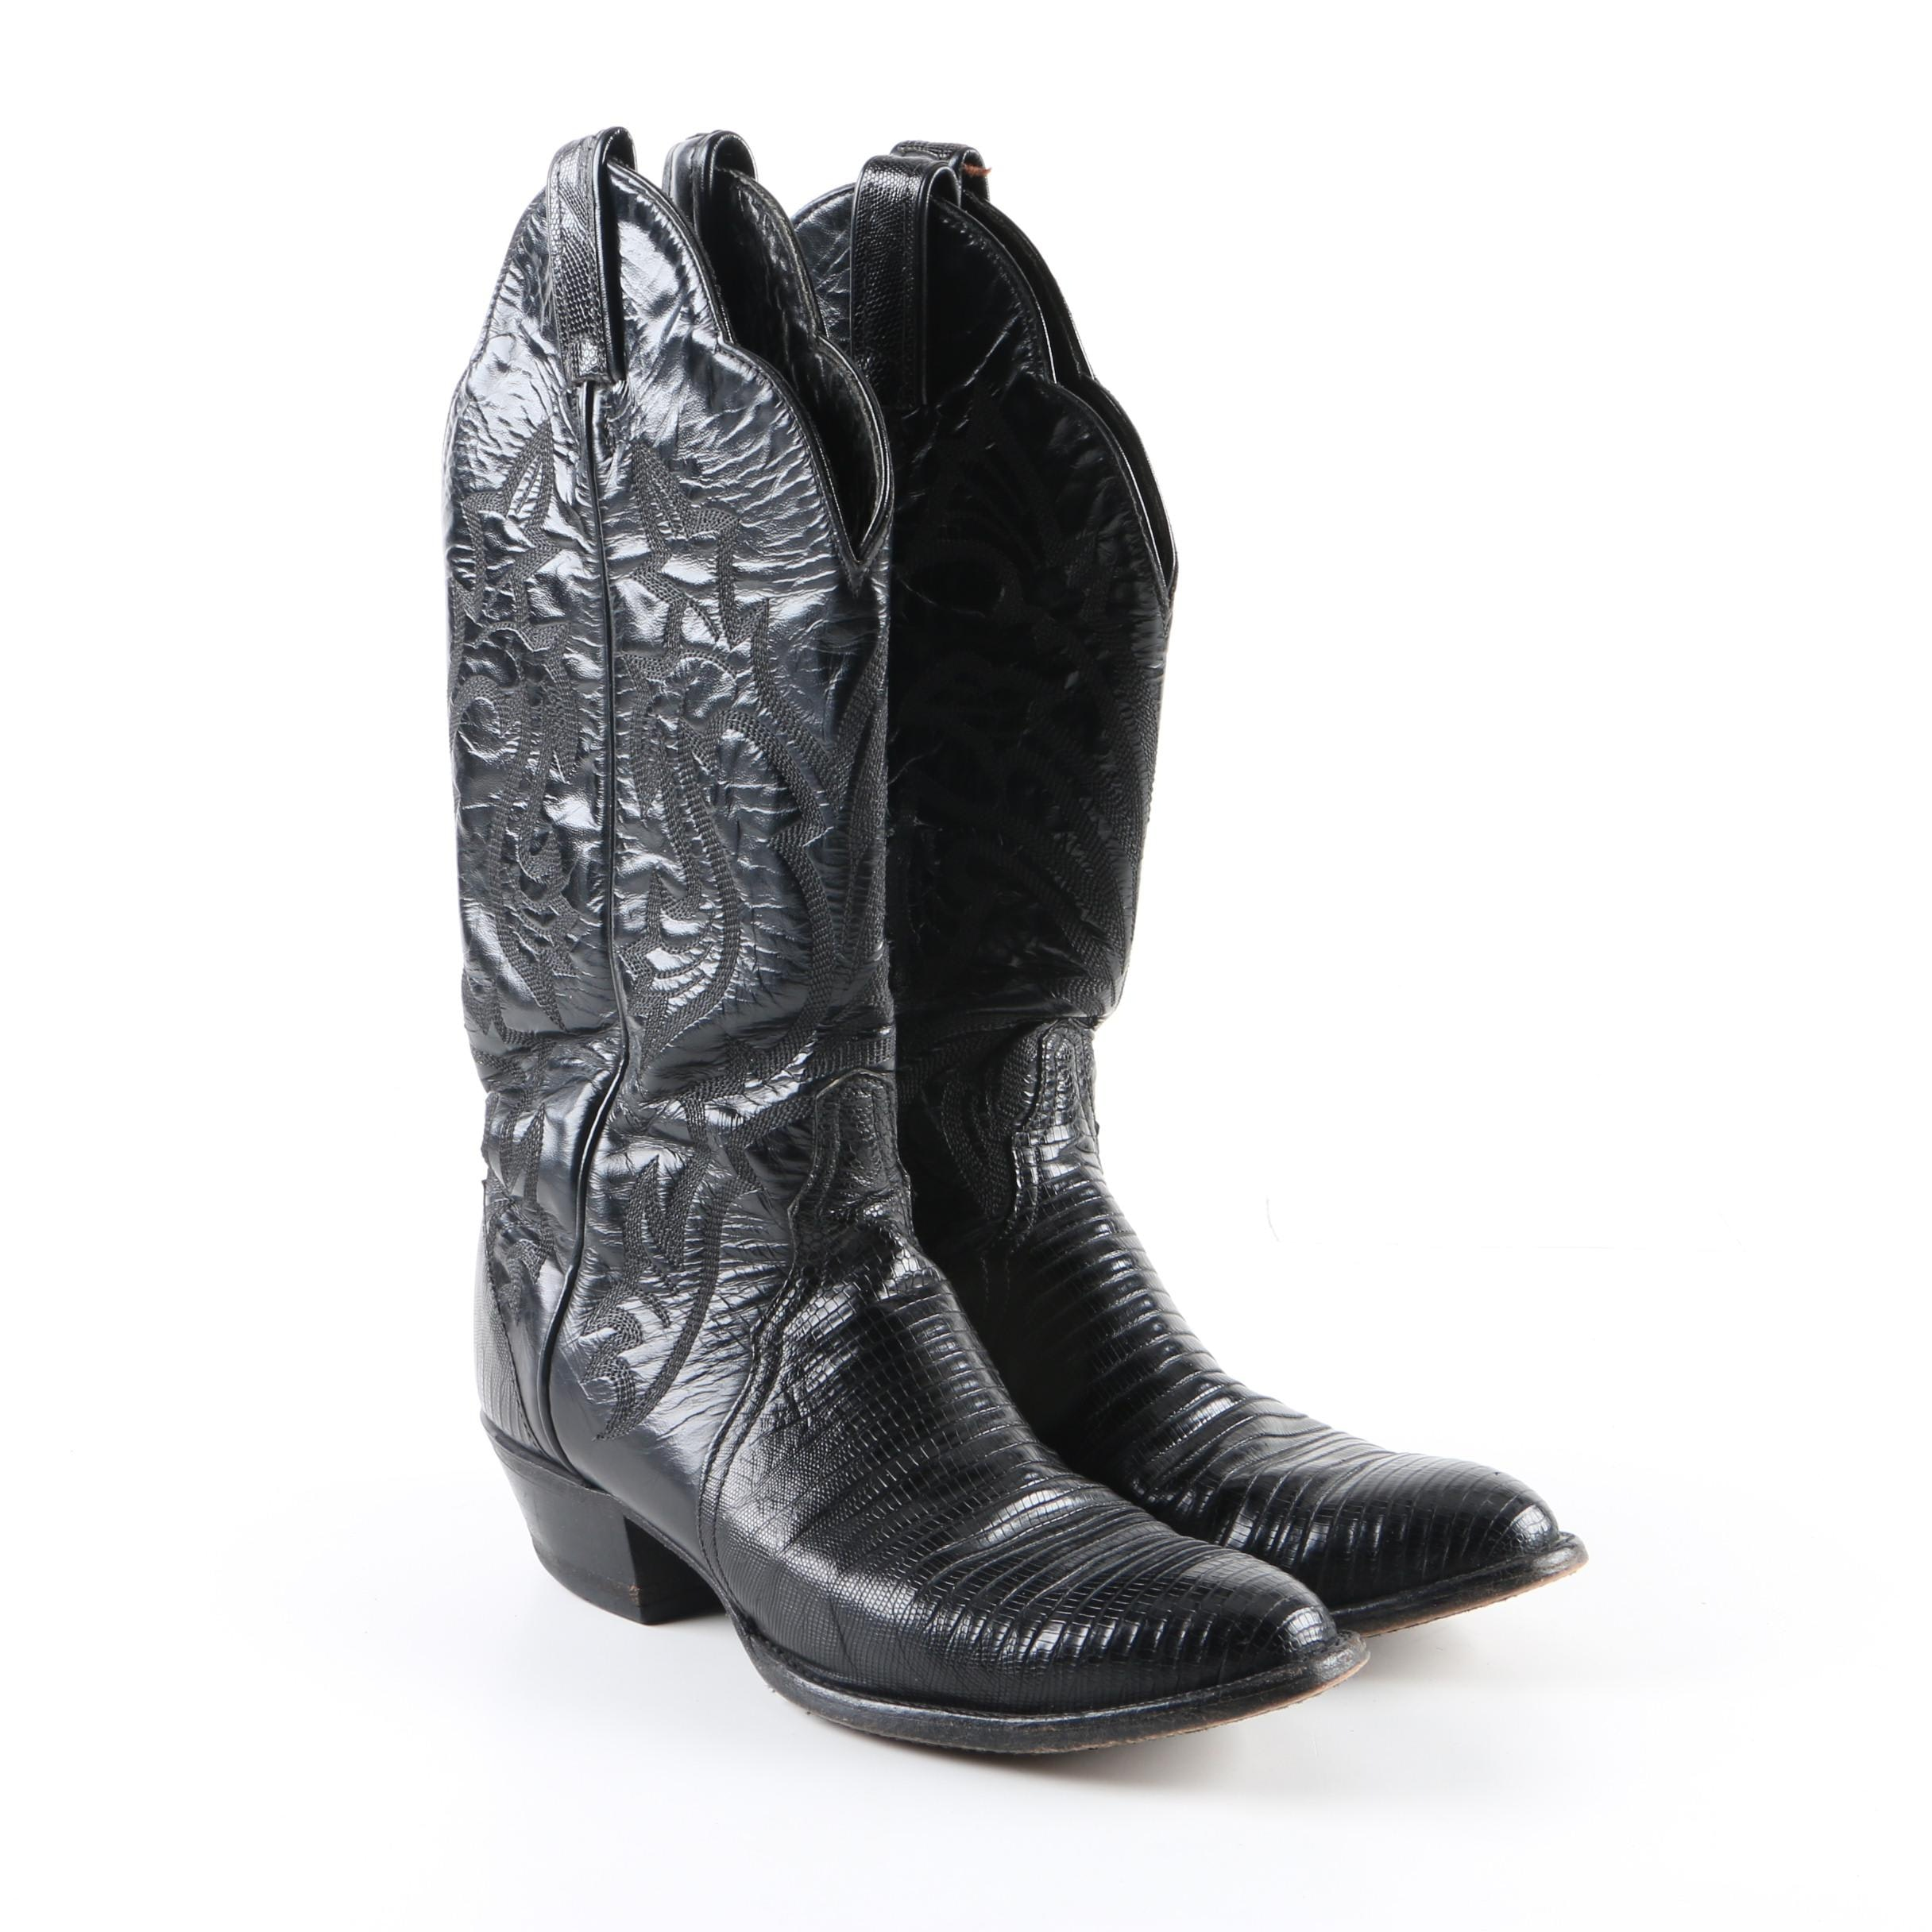 Women's Tony Lama Black Leather Cowgirl Western Boots